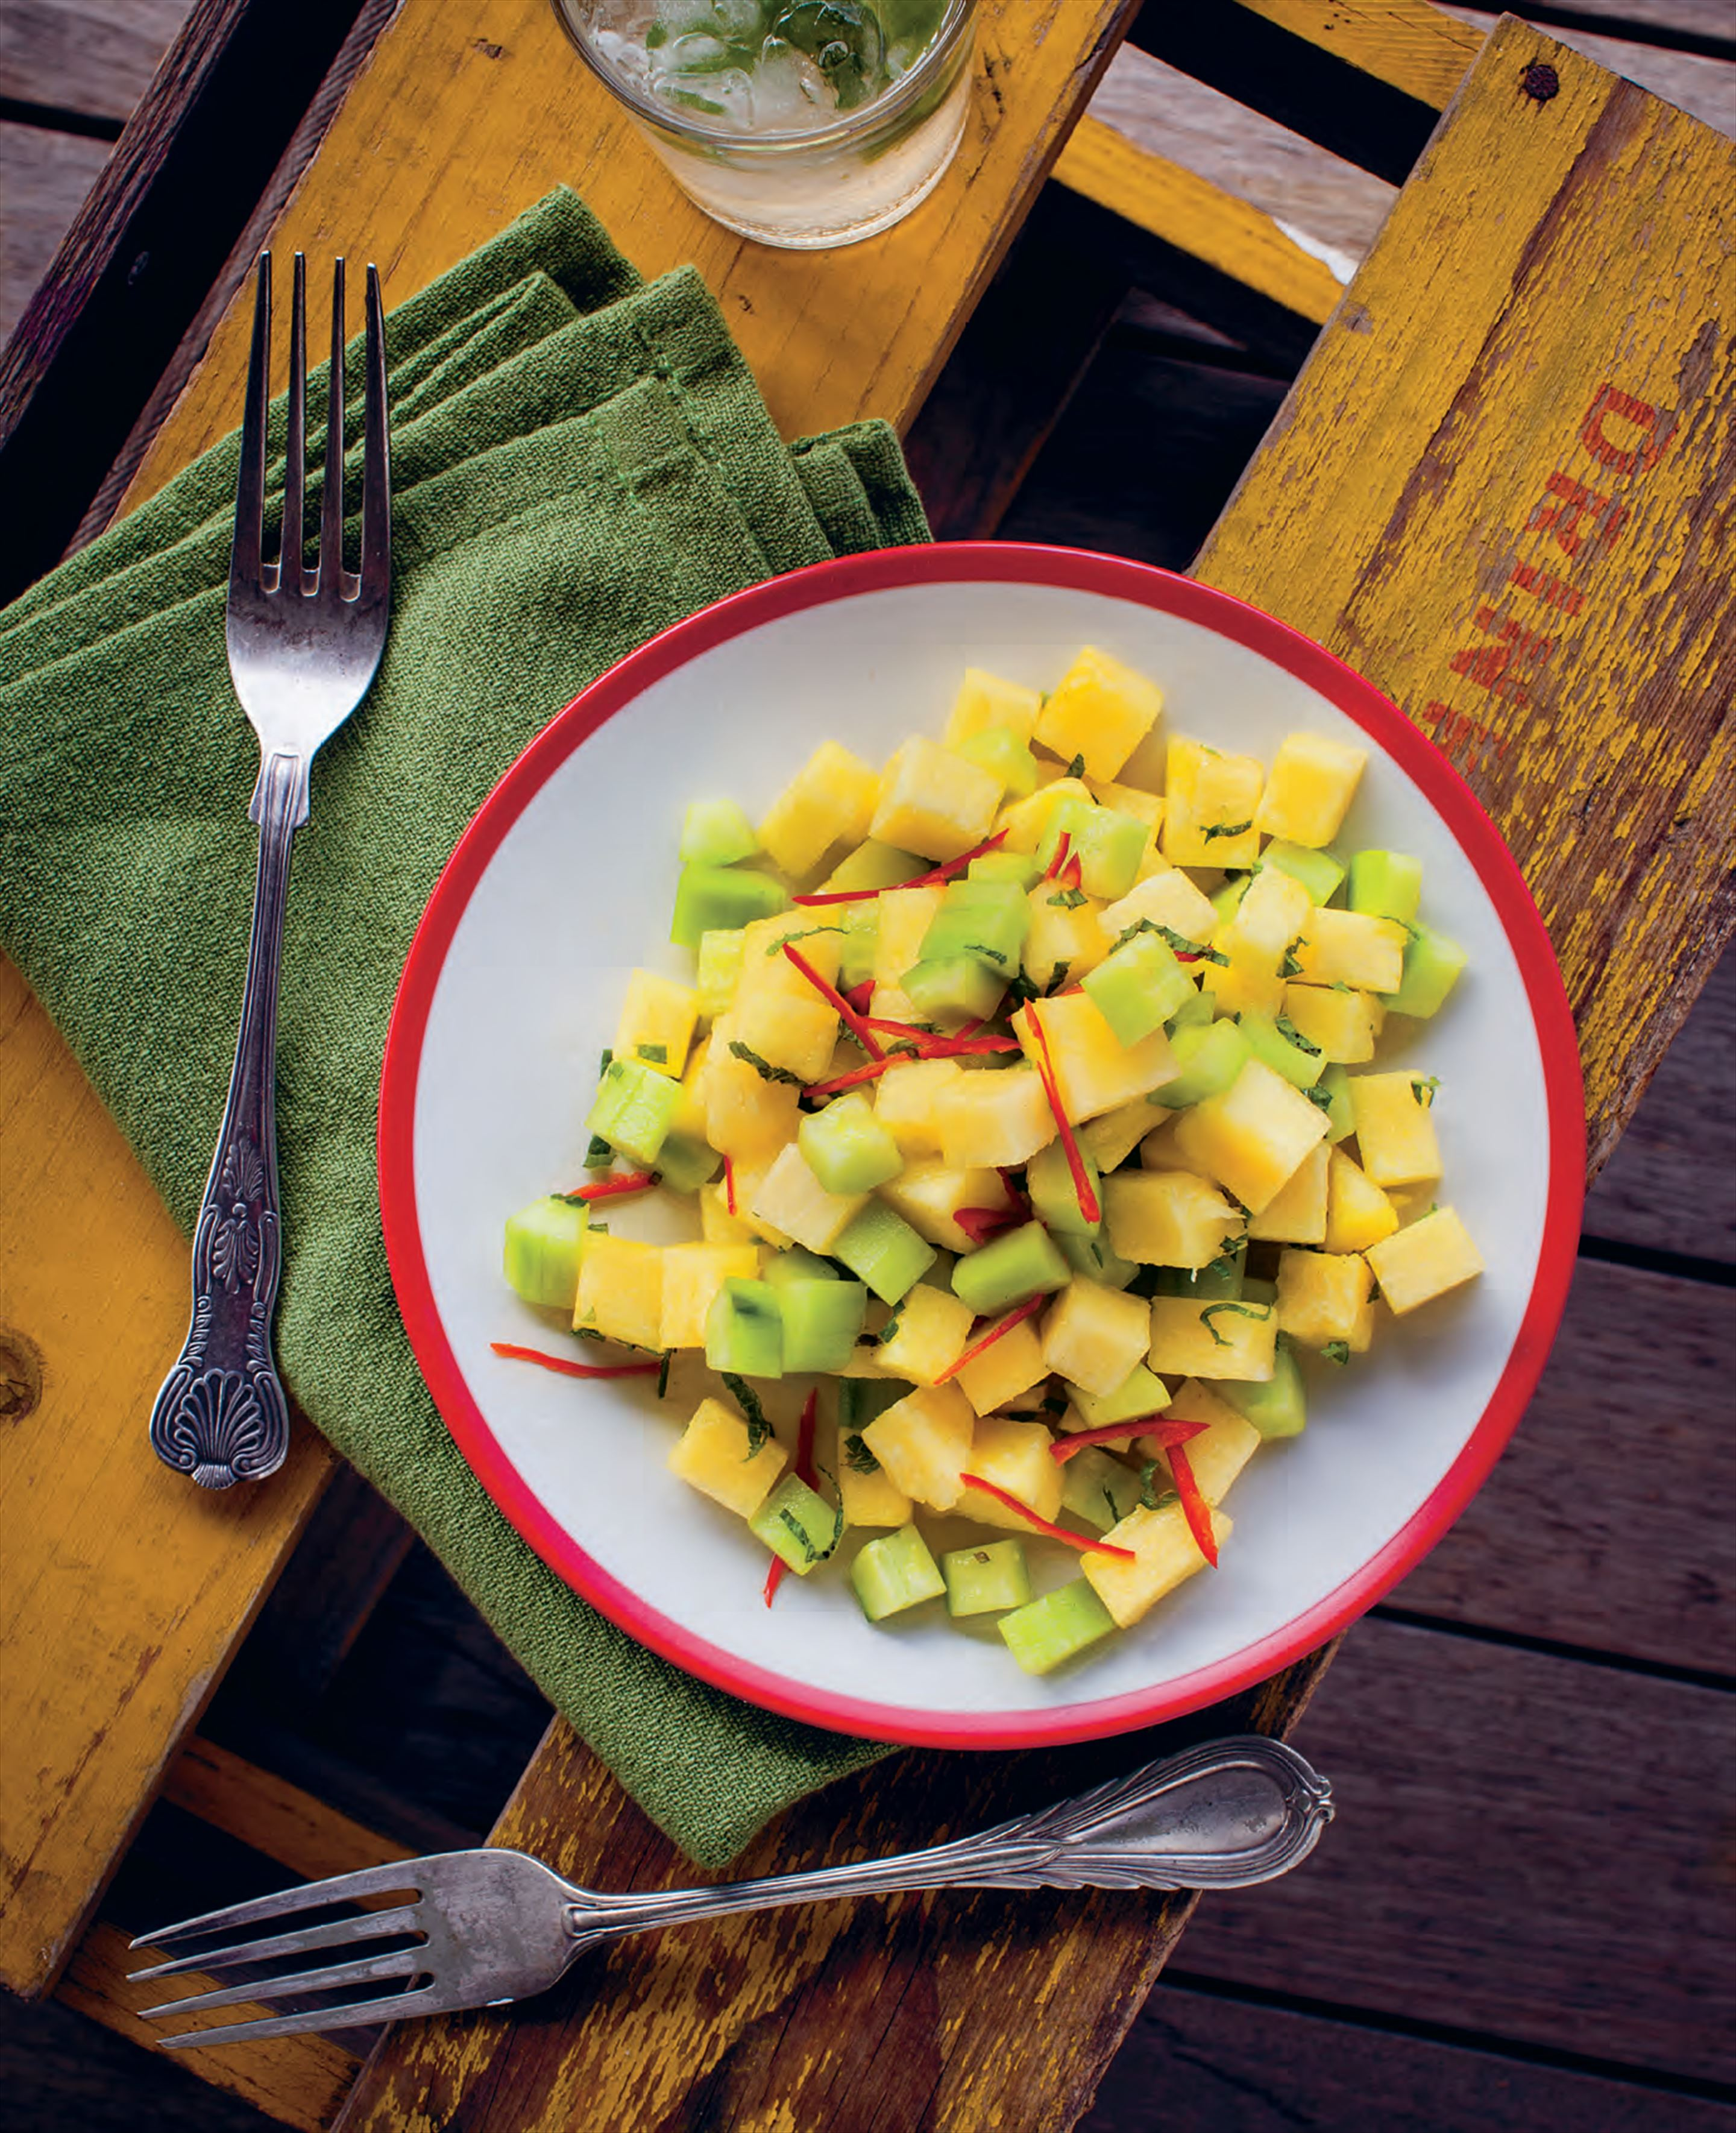 Pineapple, cucumber and chilli salad